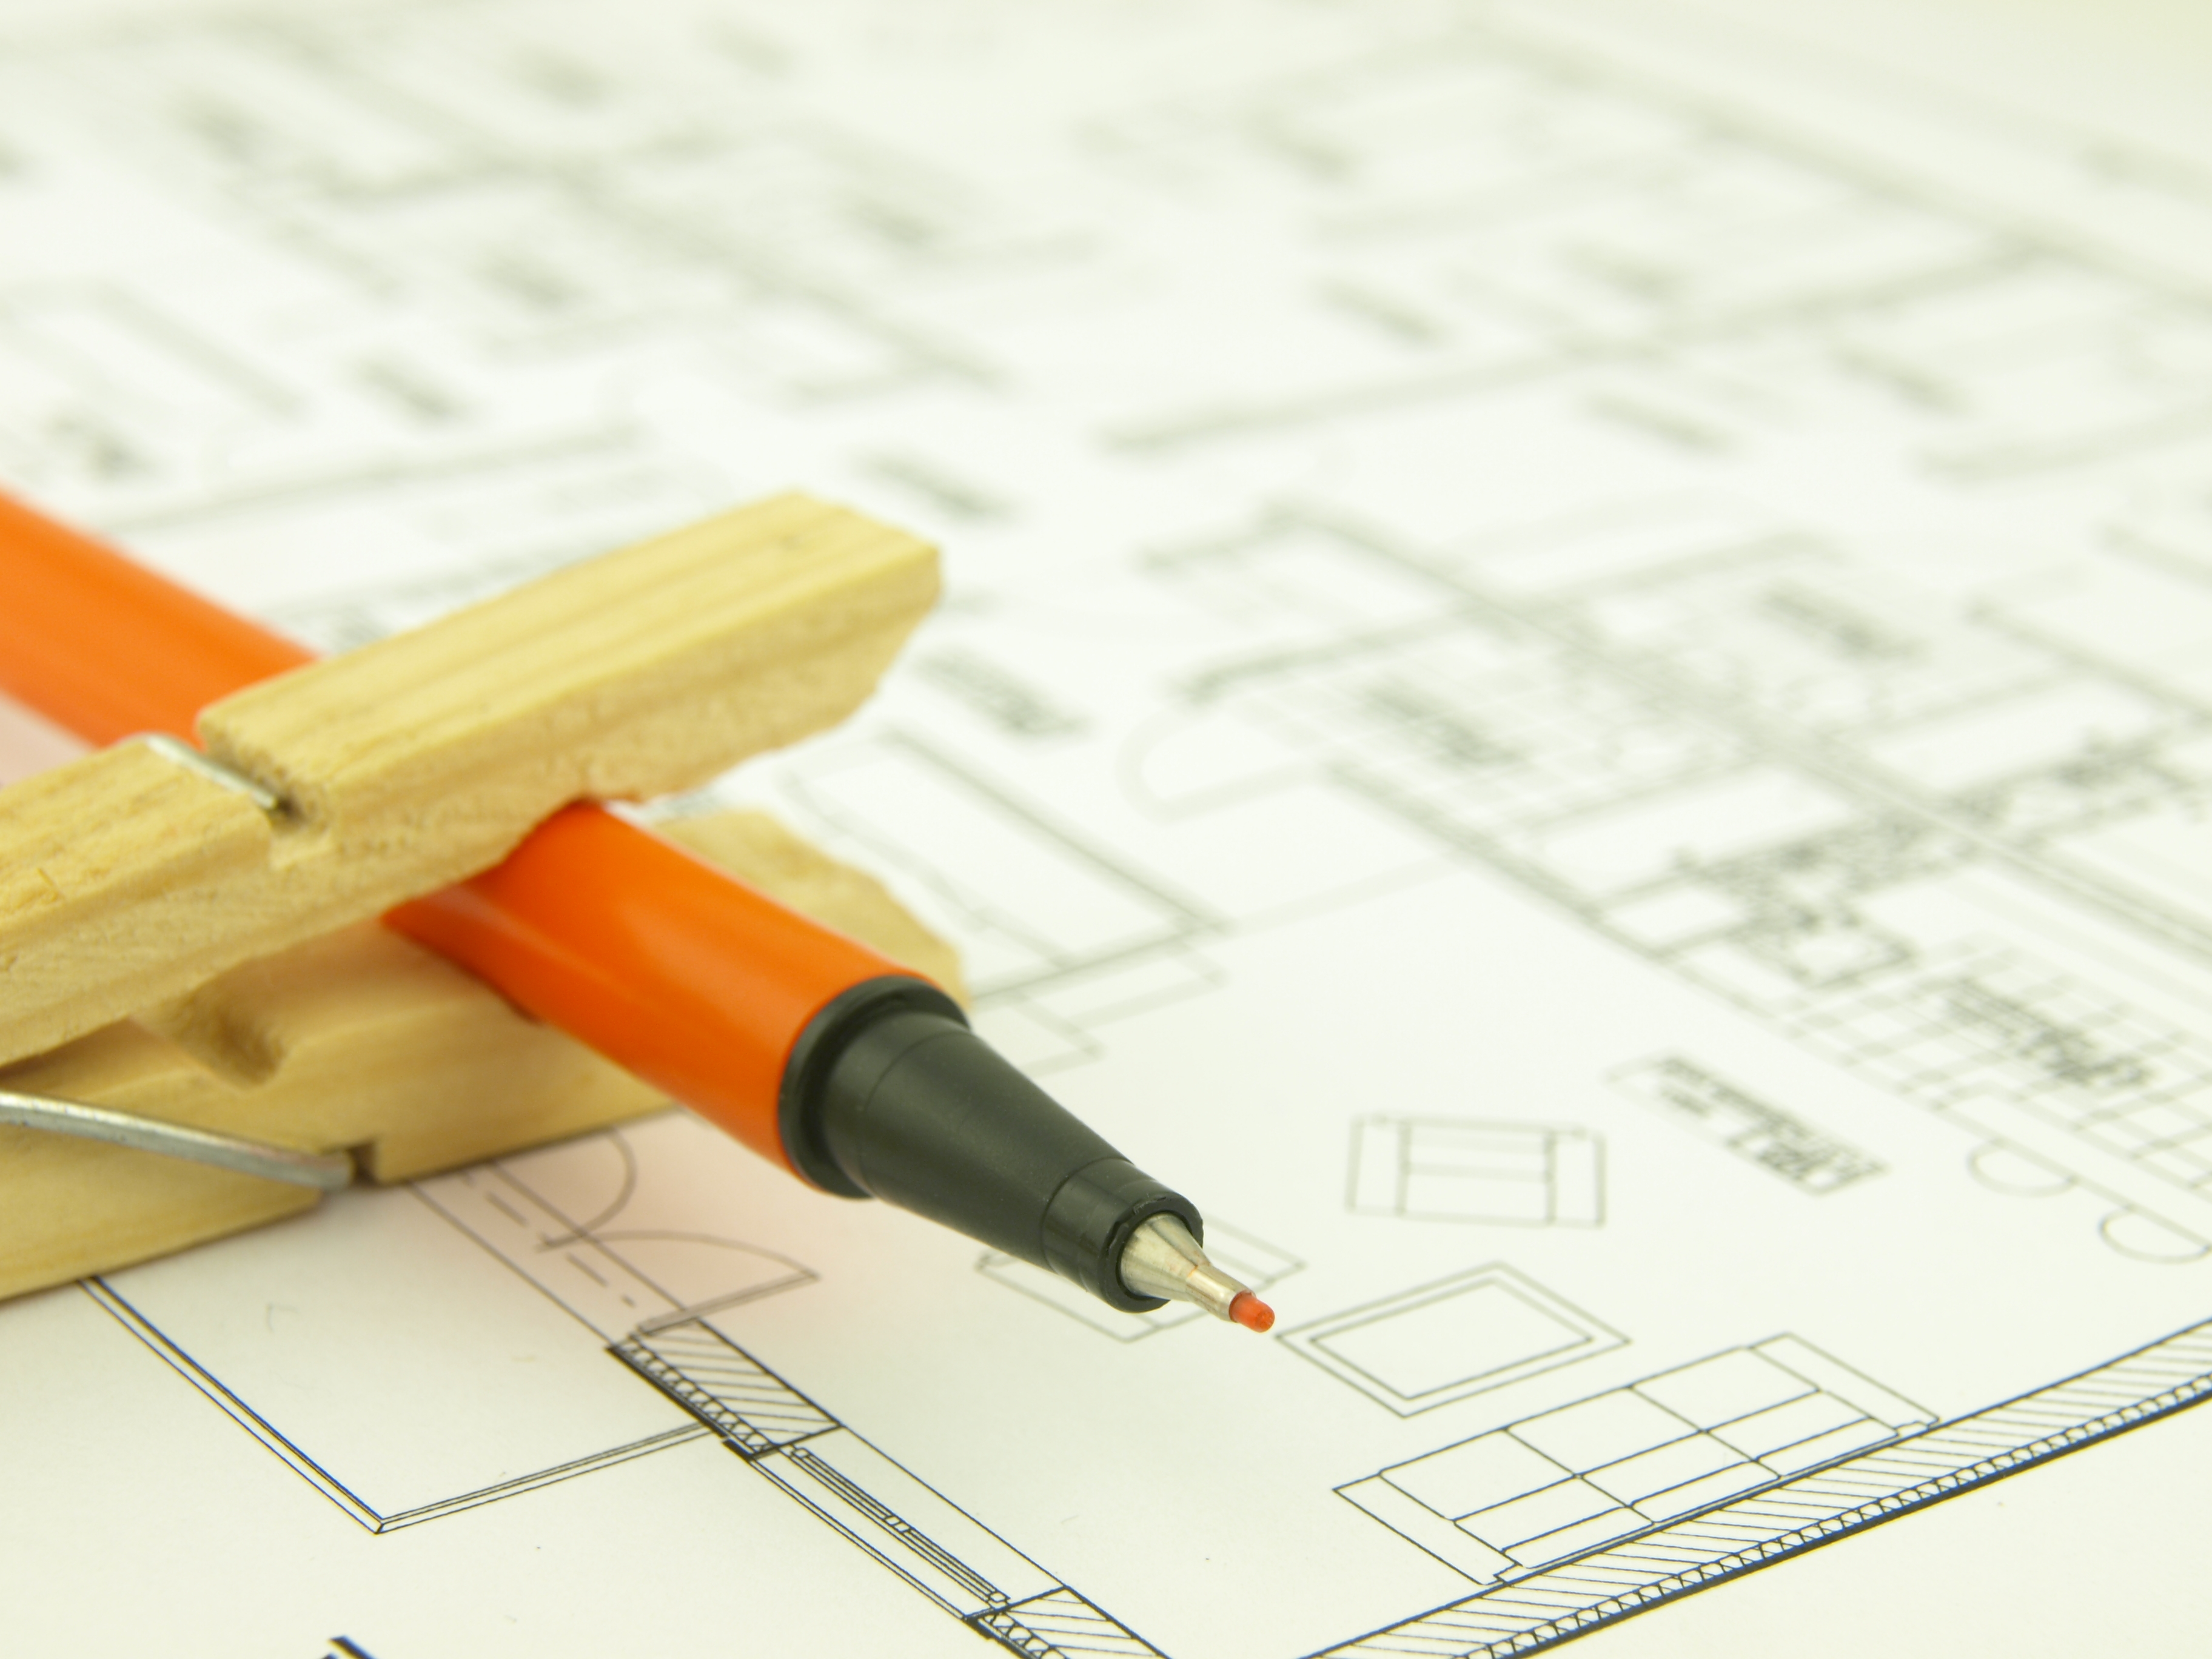 Build a house and architect tools photo